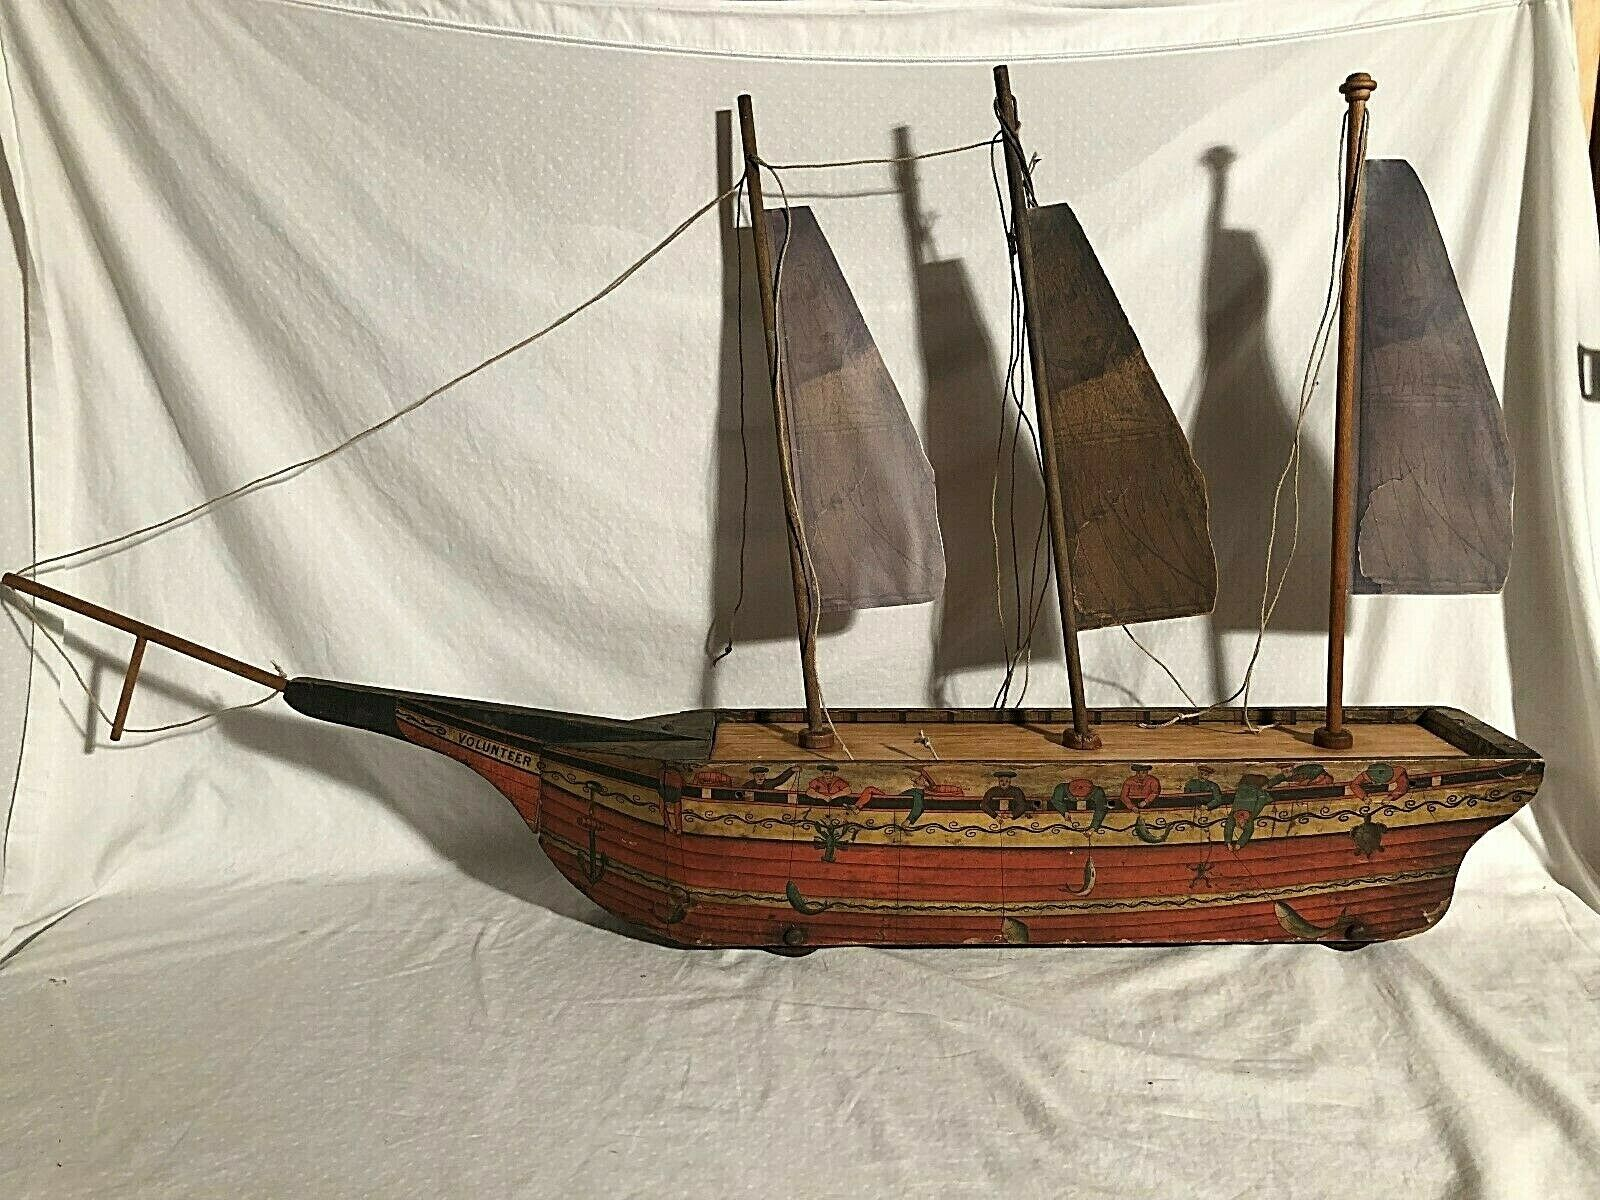 Reed Bliss Wooden Paper Litho Volunteer Ship. Vintage Large Toy Circa 1870s-80s